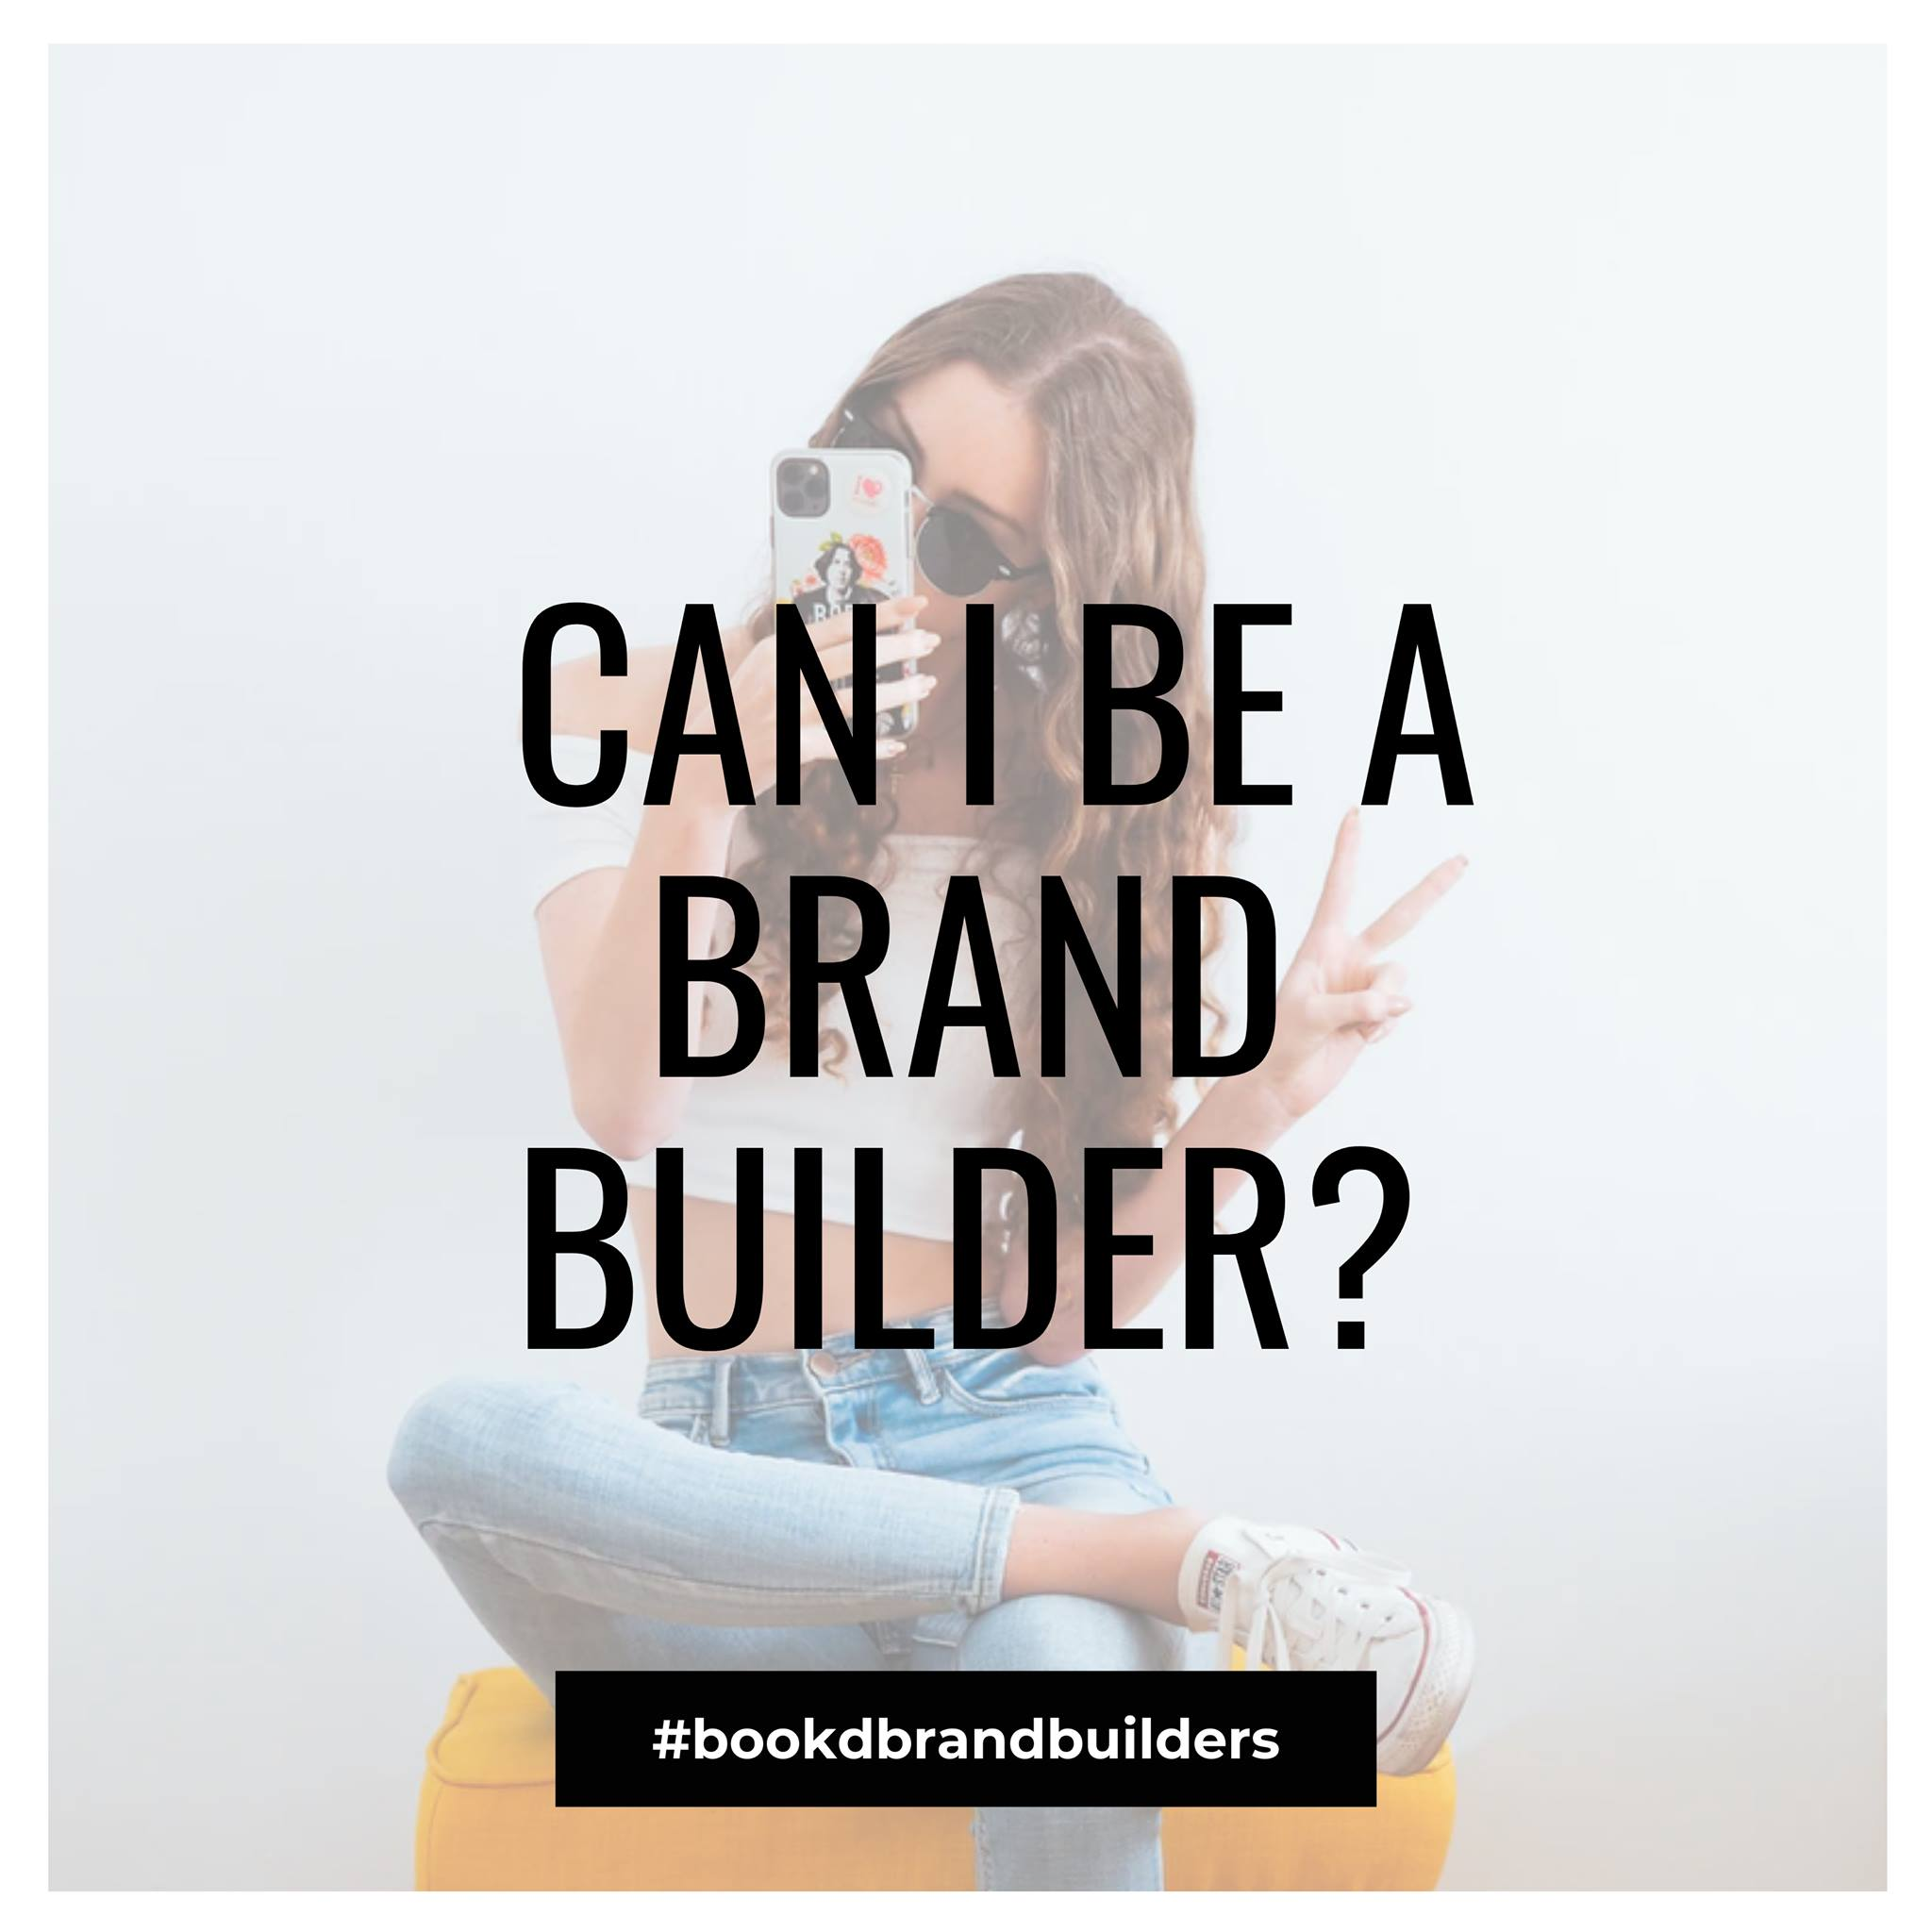 Who can be a Brand Builder? Well, anyone who is a verified bookd! talent, to sta…